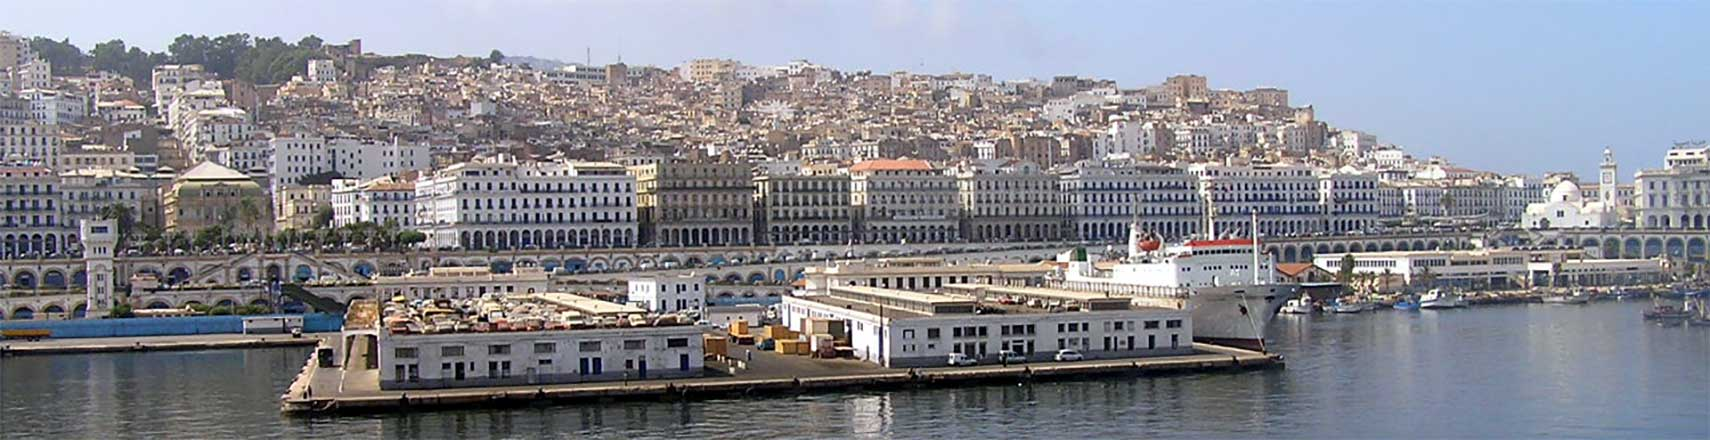 Central Algiers waterfront